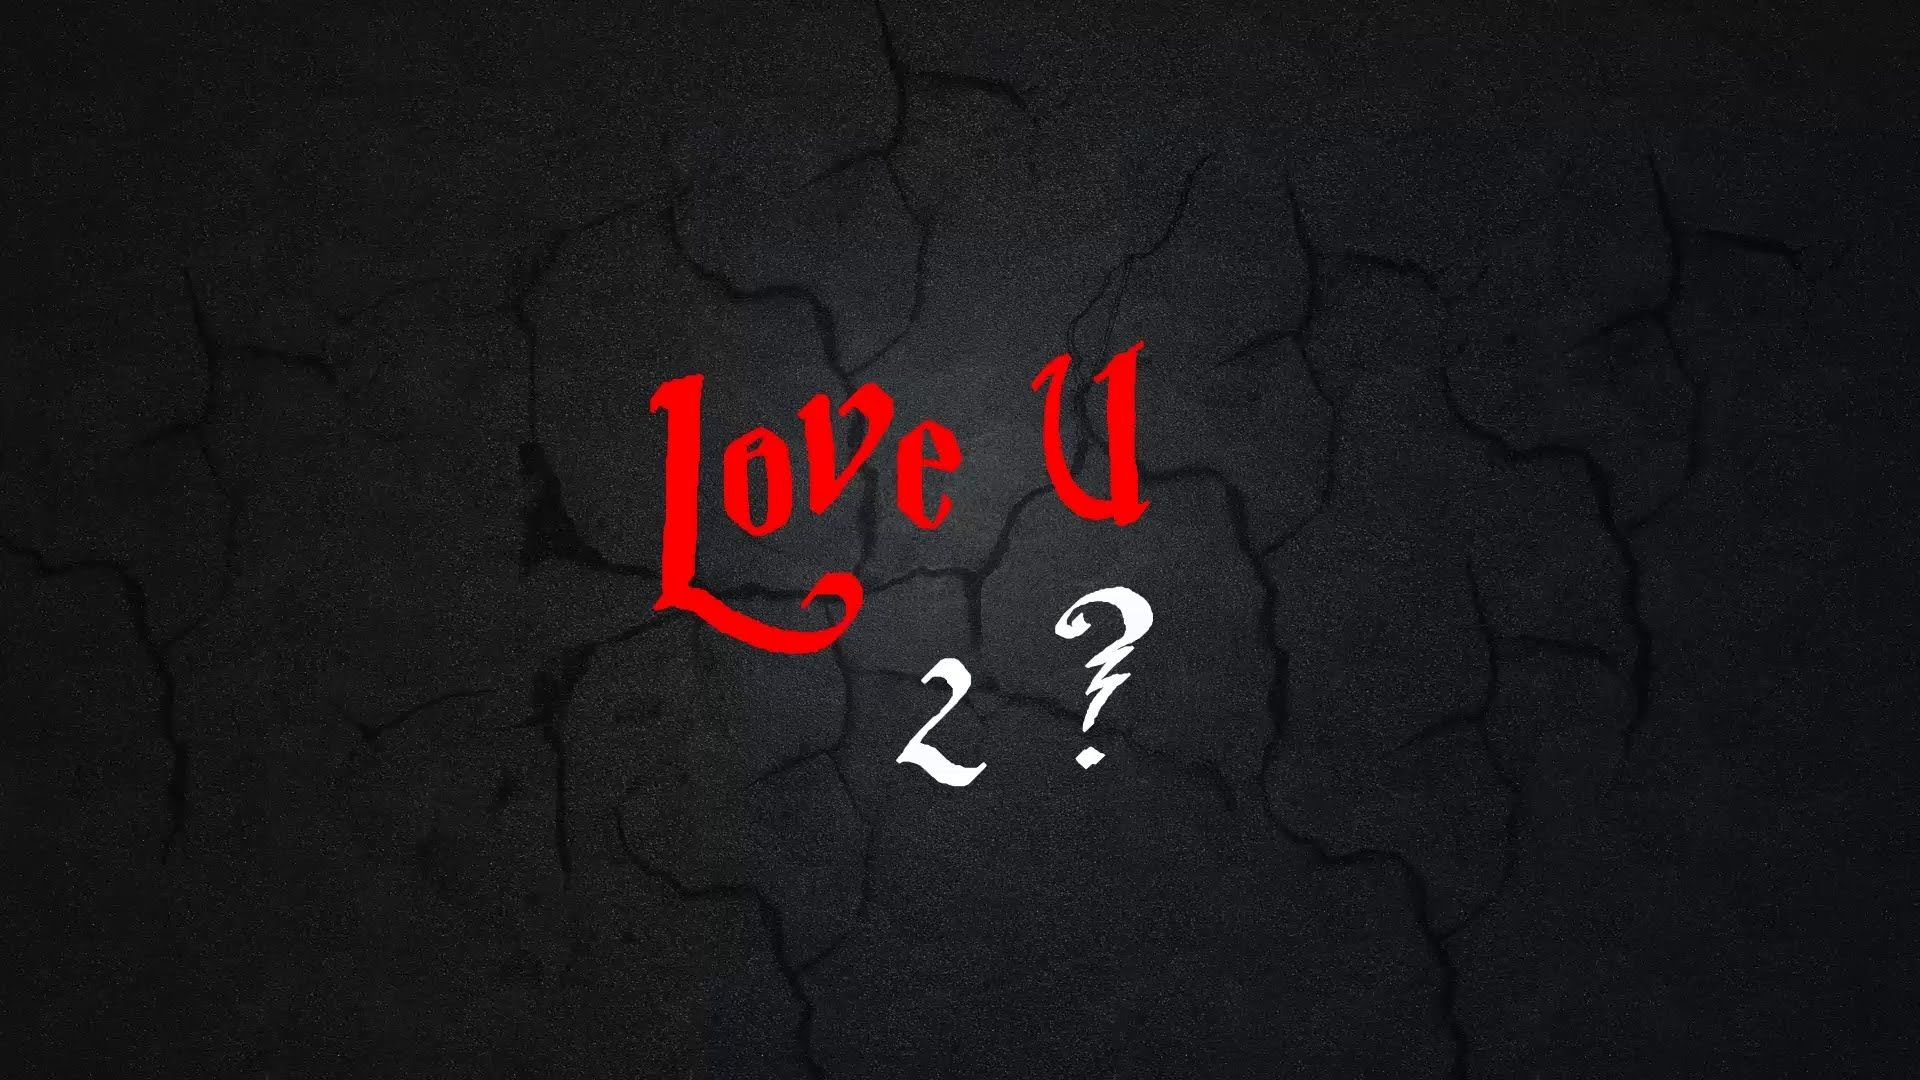 new images of love u 2 love u 2 arshad chotu youtube for images of